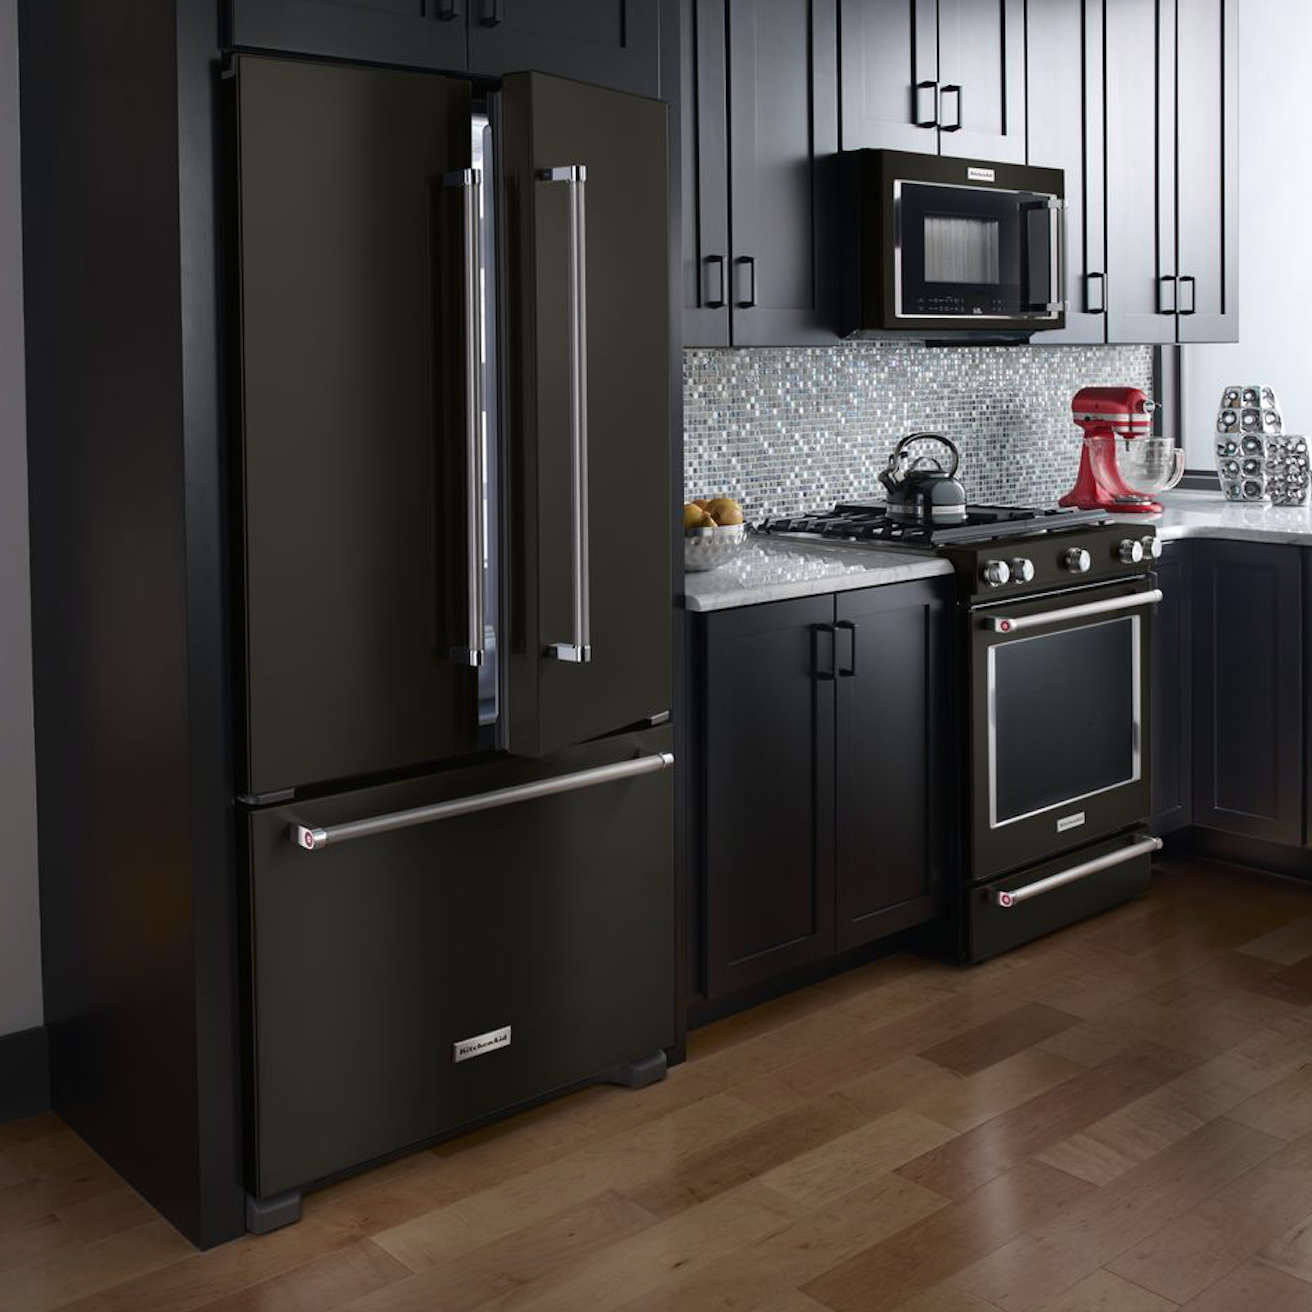 Uncategorized Major Kitchen Appliances press room get the scoop and dish it out view full text